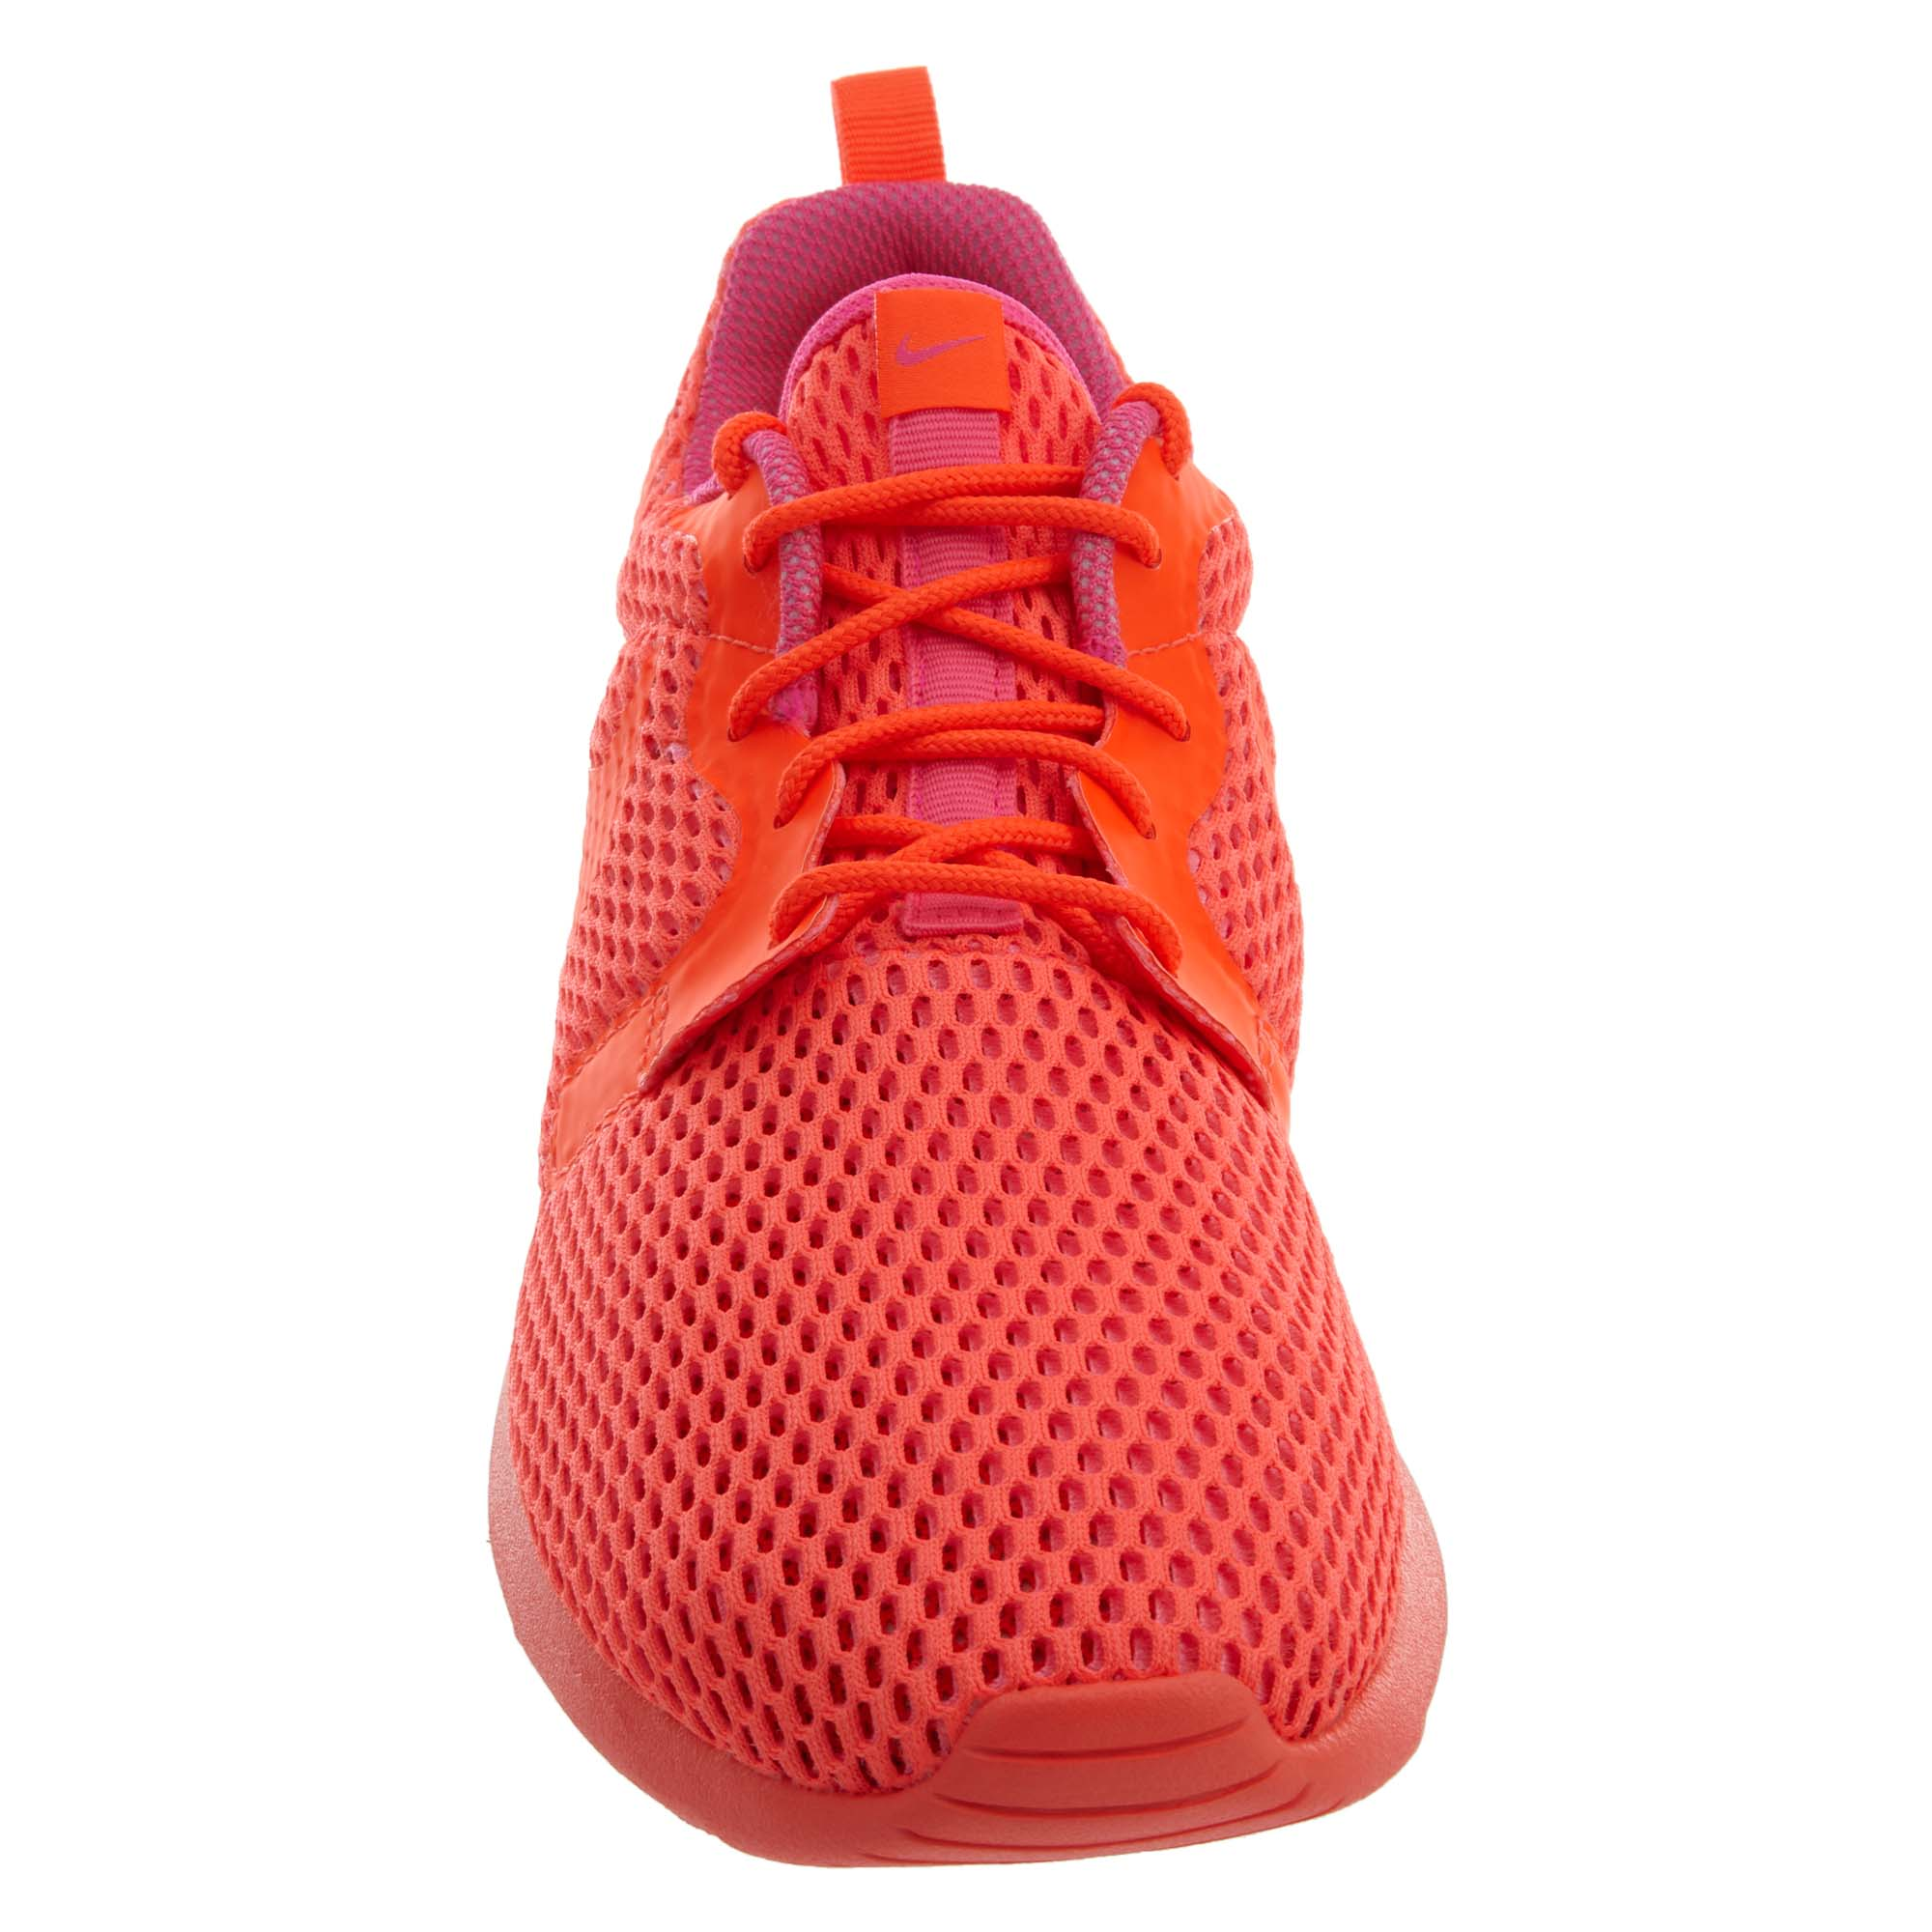 dcfc6beeff22 Nike Womens Roshe One HYP BR Running Shoes 833826-800